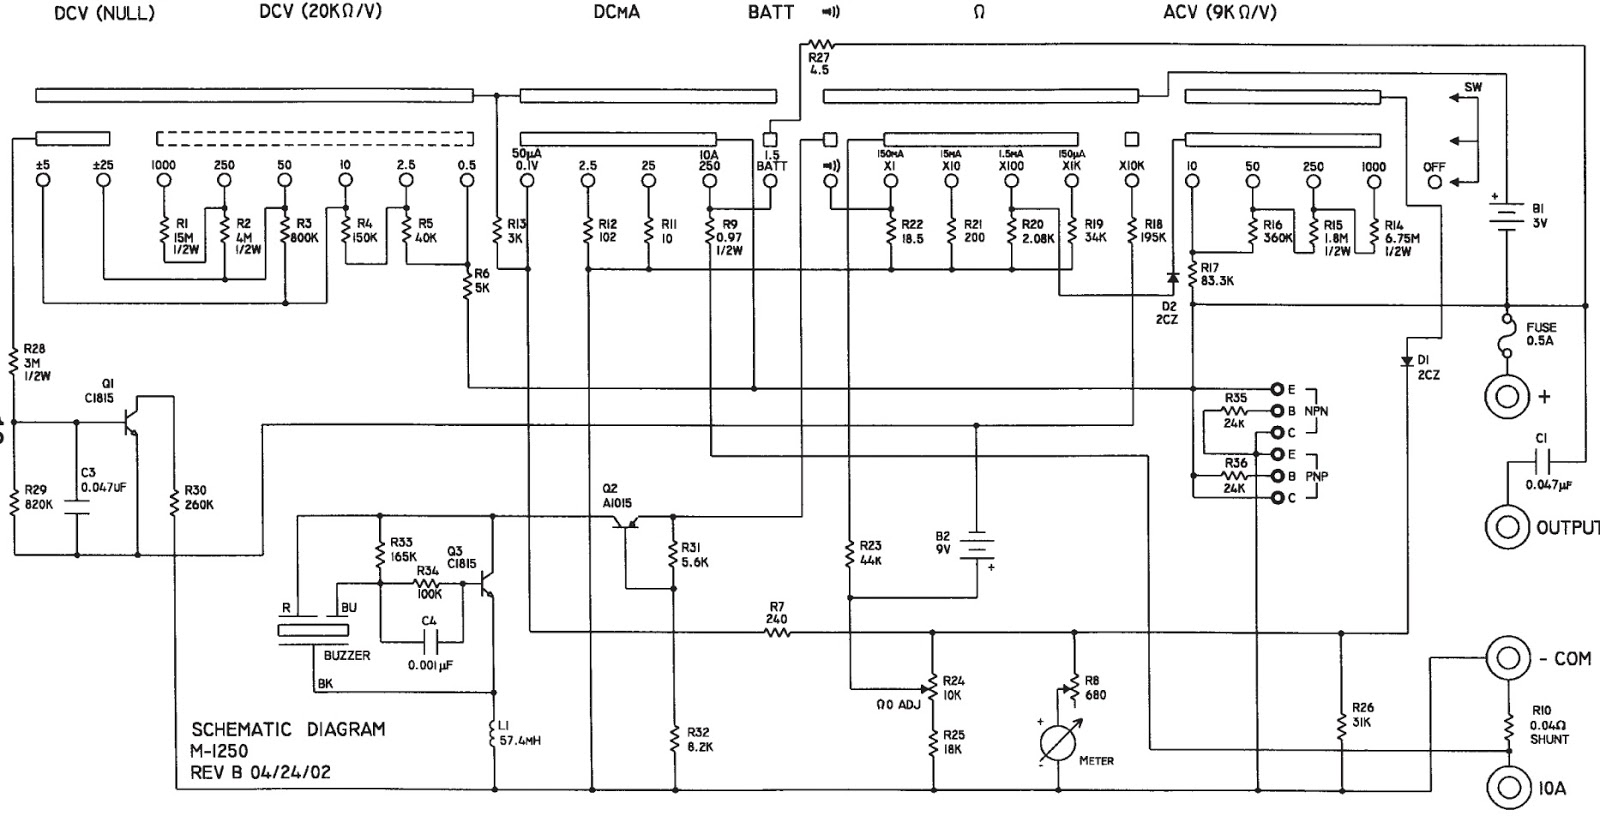 schematic diagrams metrawatt unigor 4s analog multimeter and cast rh schematicscom blogspot com Analog Voltmeter Analog Meter